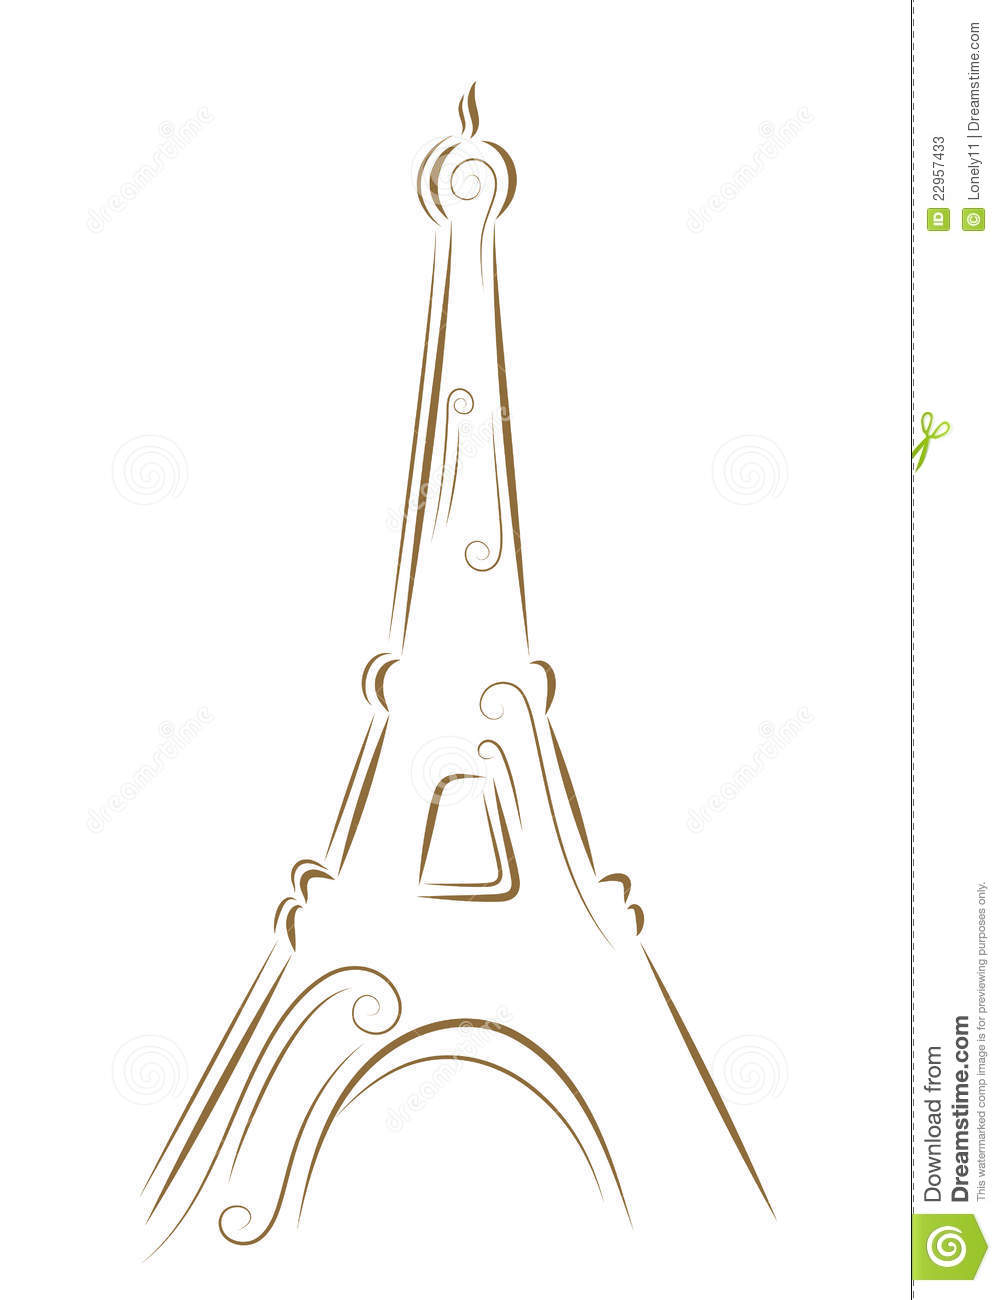 sketch of the eiffel tower stock vector image of eiffel 22957433. Black Bedroom Furniture Sets. Home Design Ideas